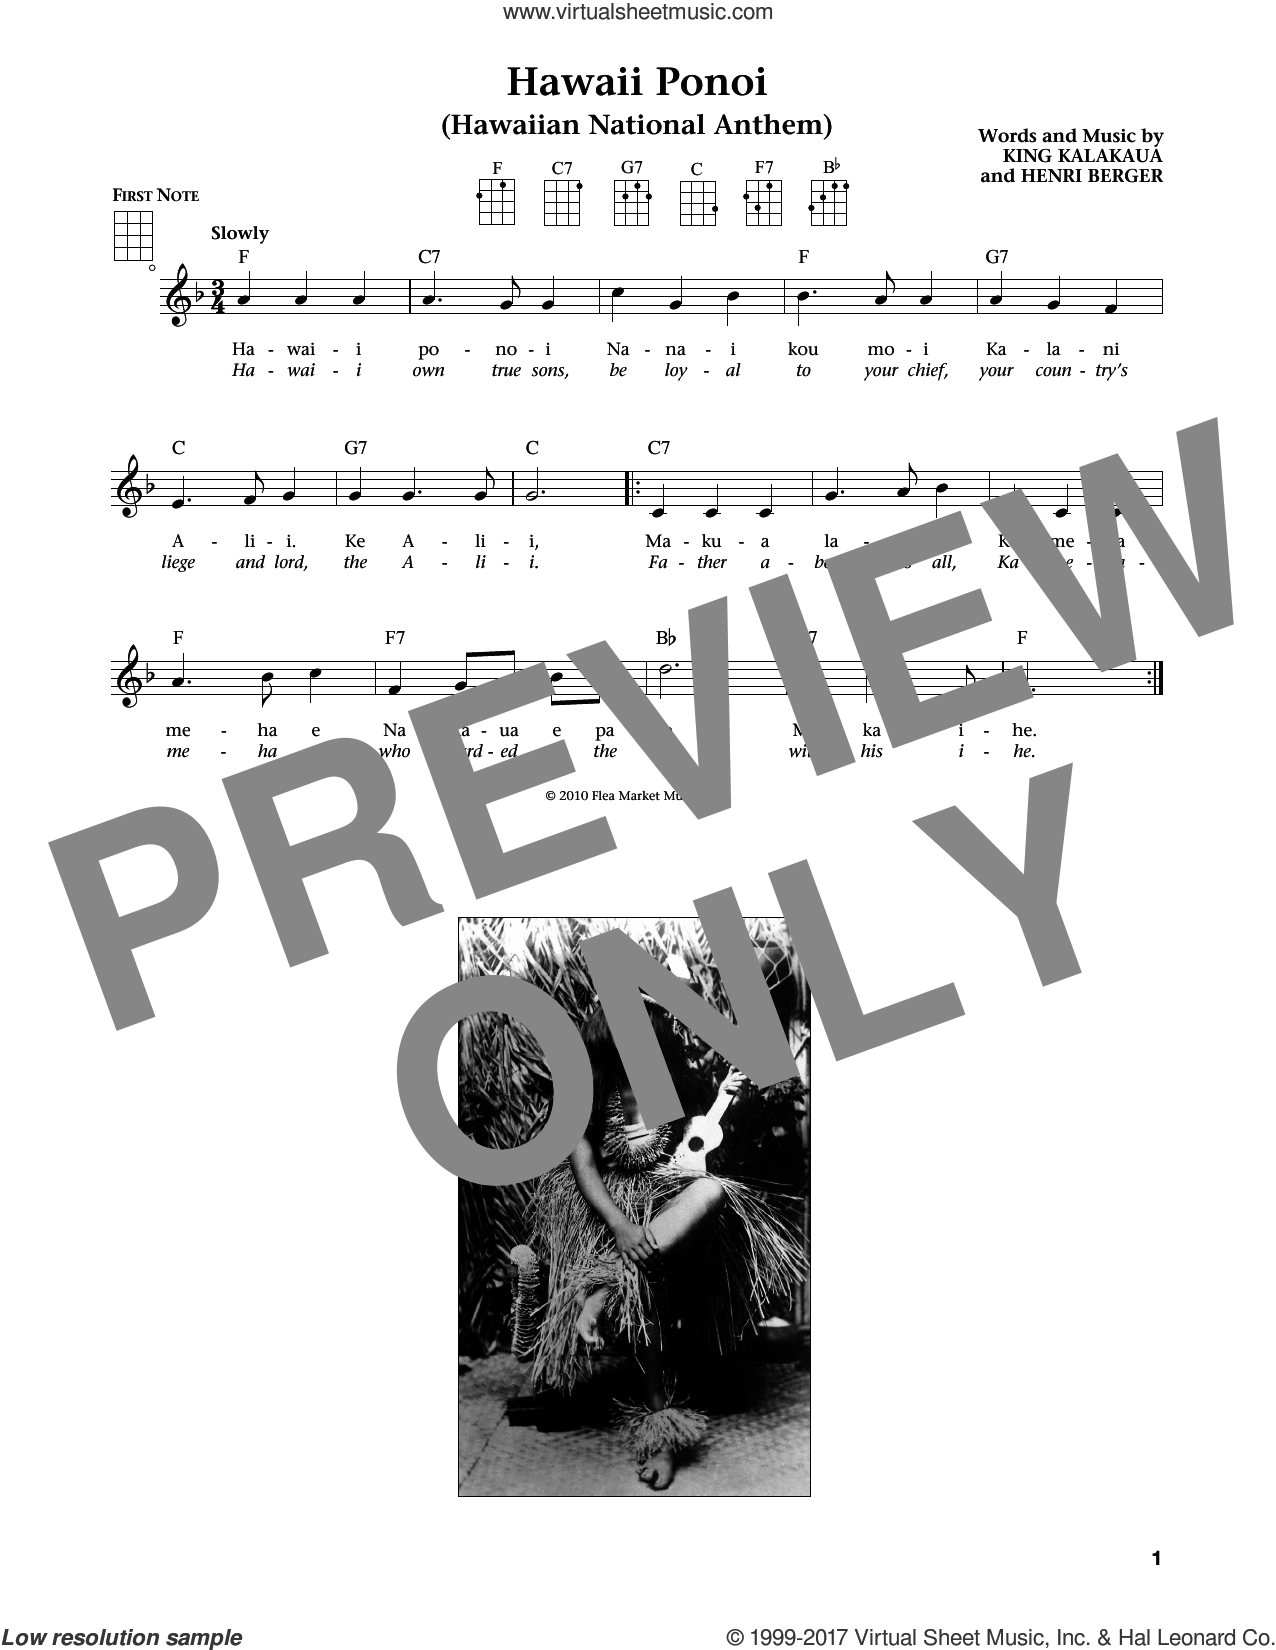 Hawaii Ponoi sheet music for ukulele by Henri Berger, Jim Beloff, Liz Beloff and King Kalakaua, intermediate. Score Image Preview.